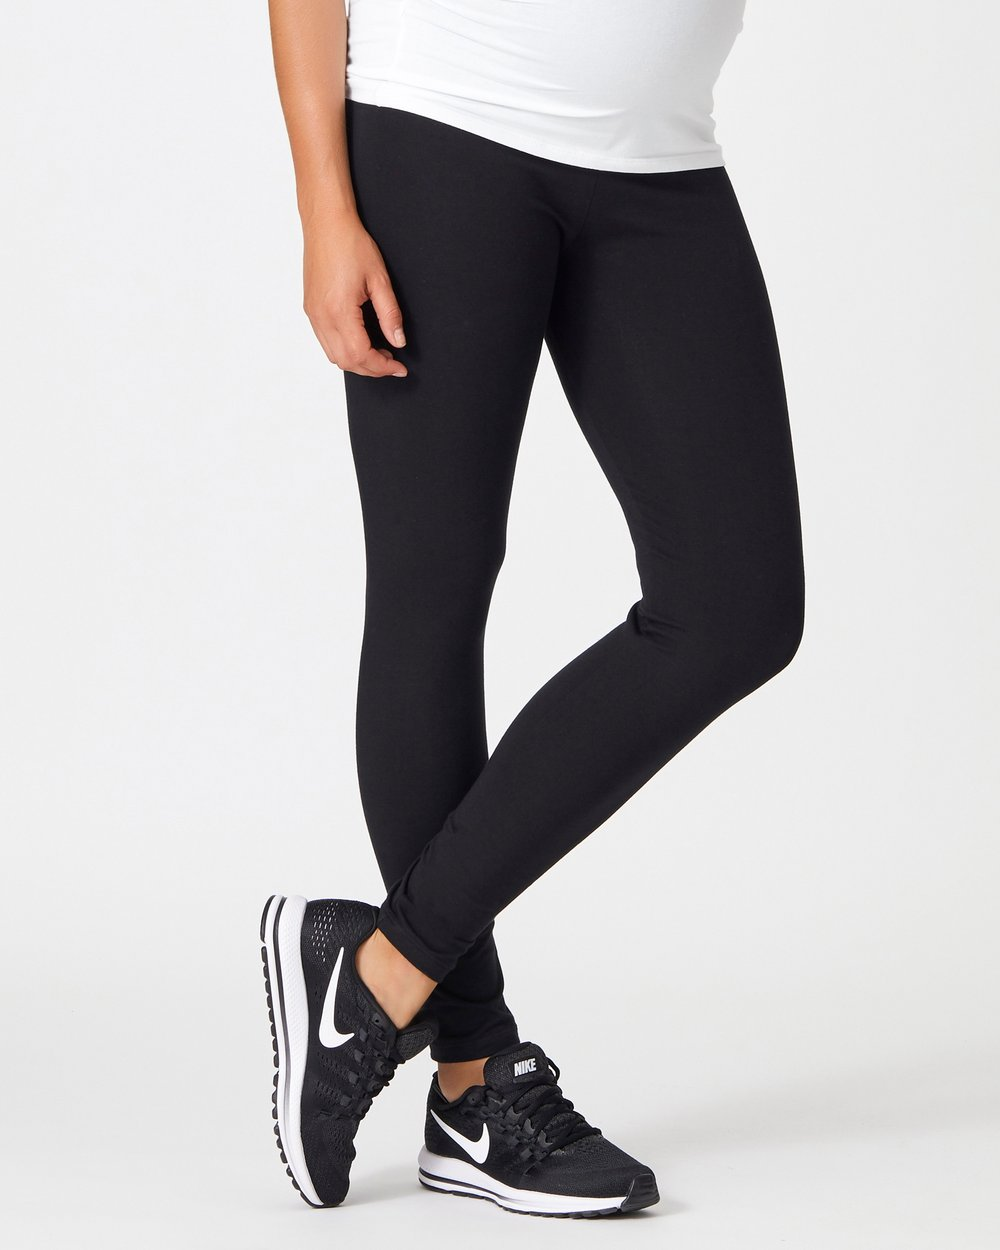 7caccc423a773 Active Maternity Leggings by Pea in a Pod Maternity Online | THE ICONIC |  Australia